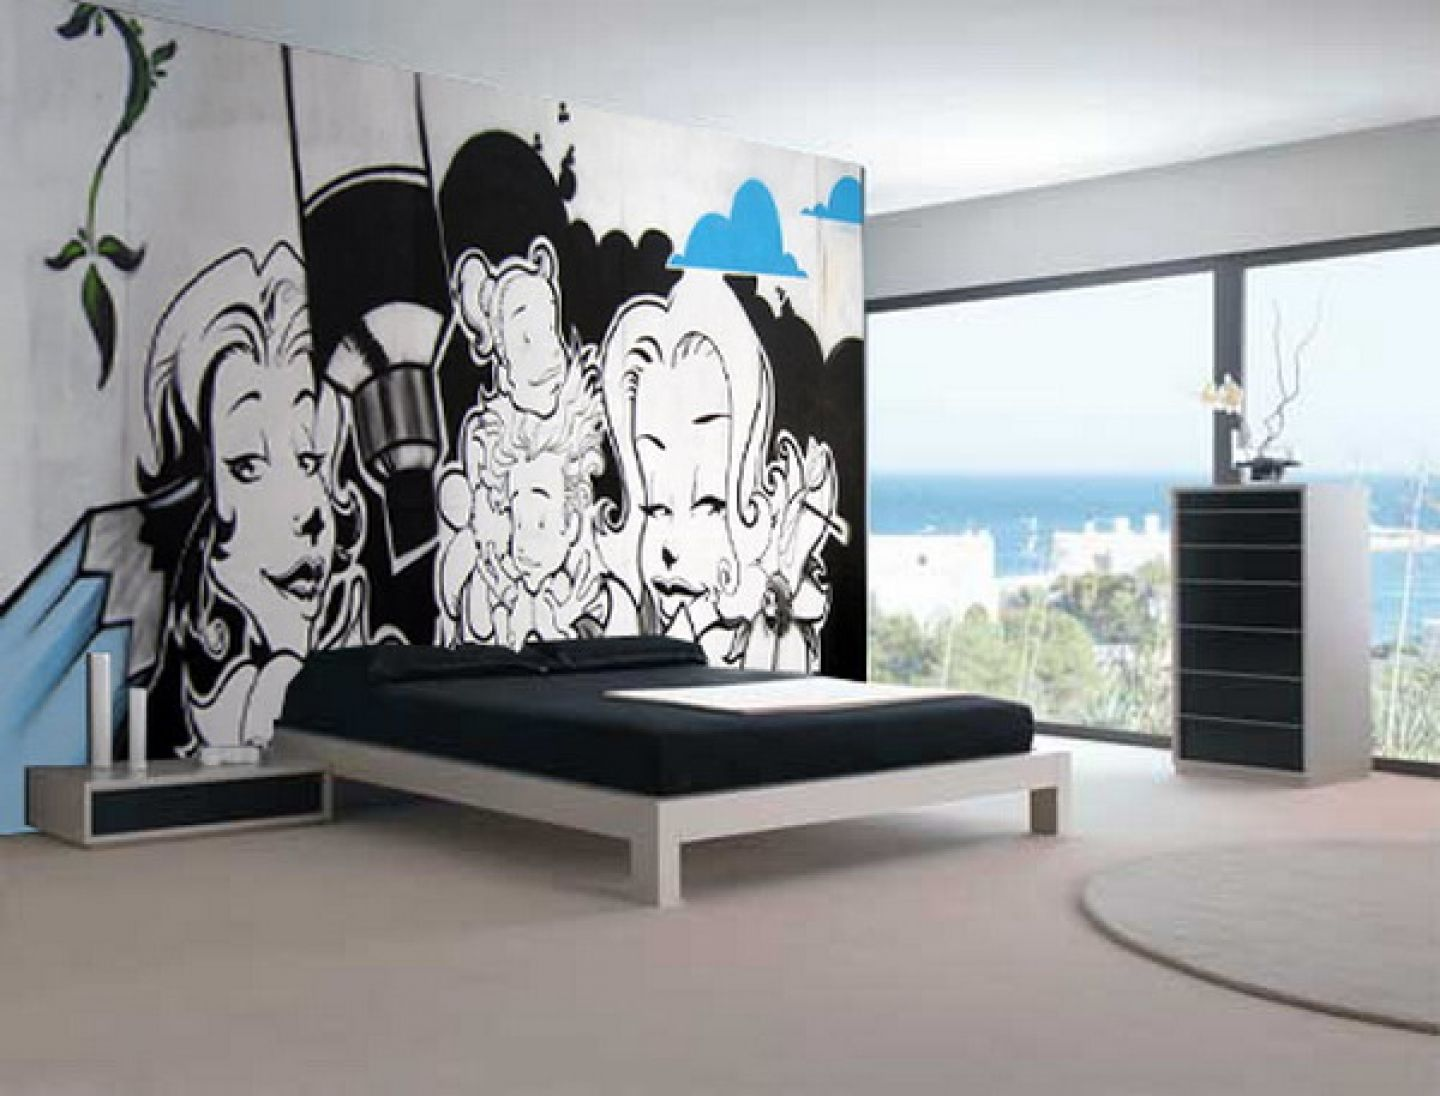 Bedroom paint designs black and white - Cute Black White Graffiti Mural Teen Bedroom Interior Design Idea